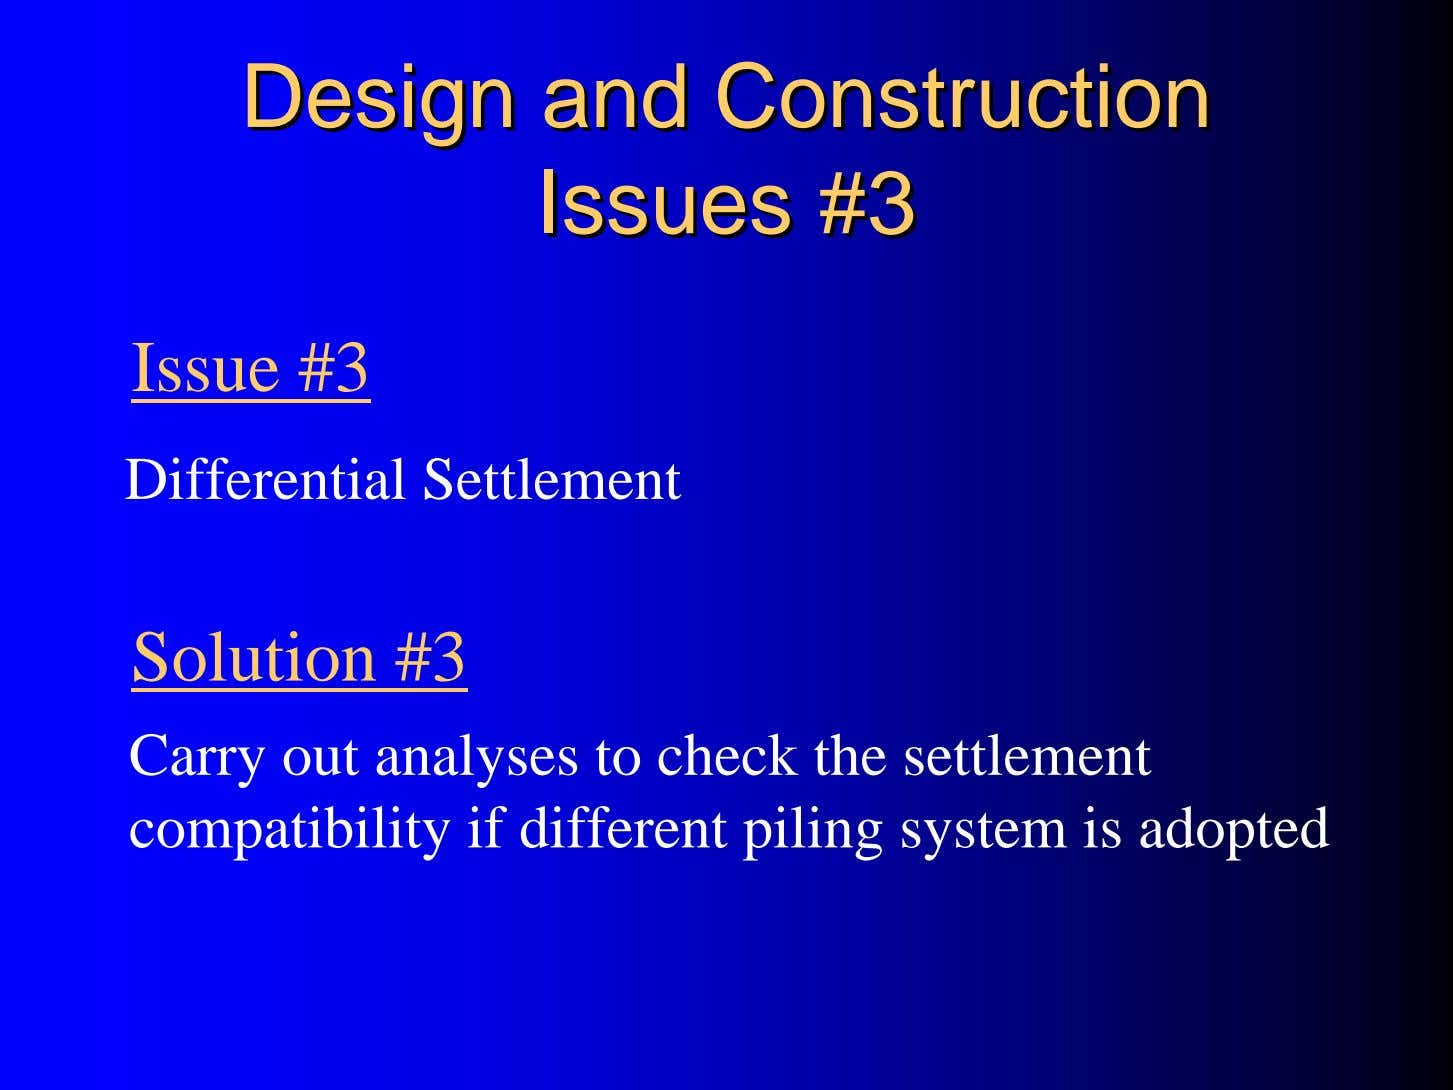 DesignDesign andand ConstructionConstruction IssuesIssues #3#3 Issue #3 Differential Settlement Solution #3 Carry out